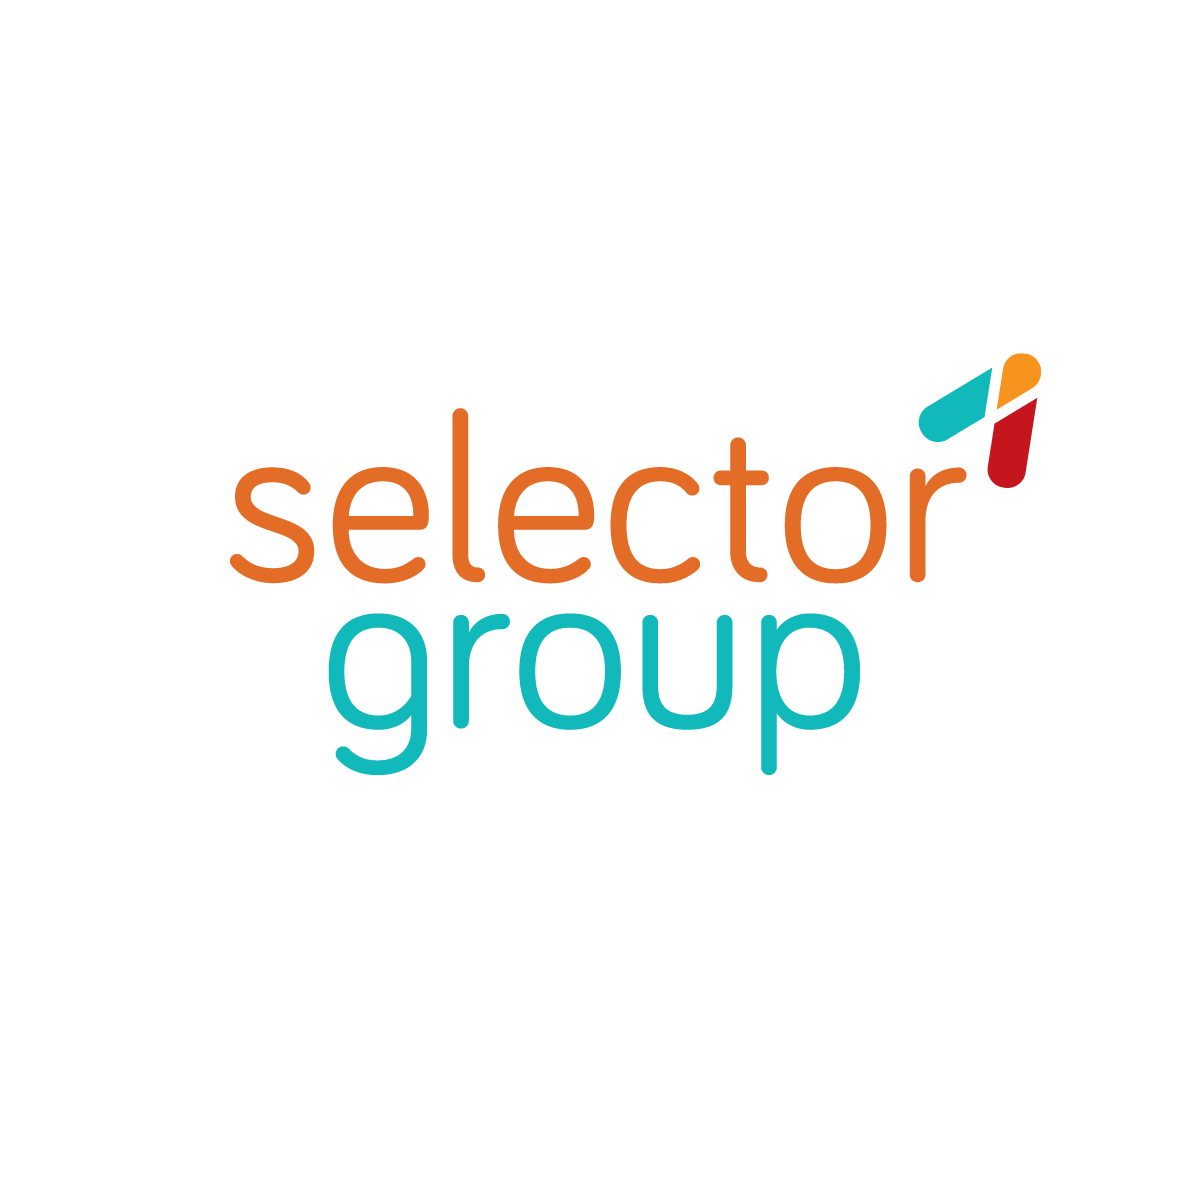 selector group.png